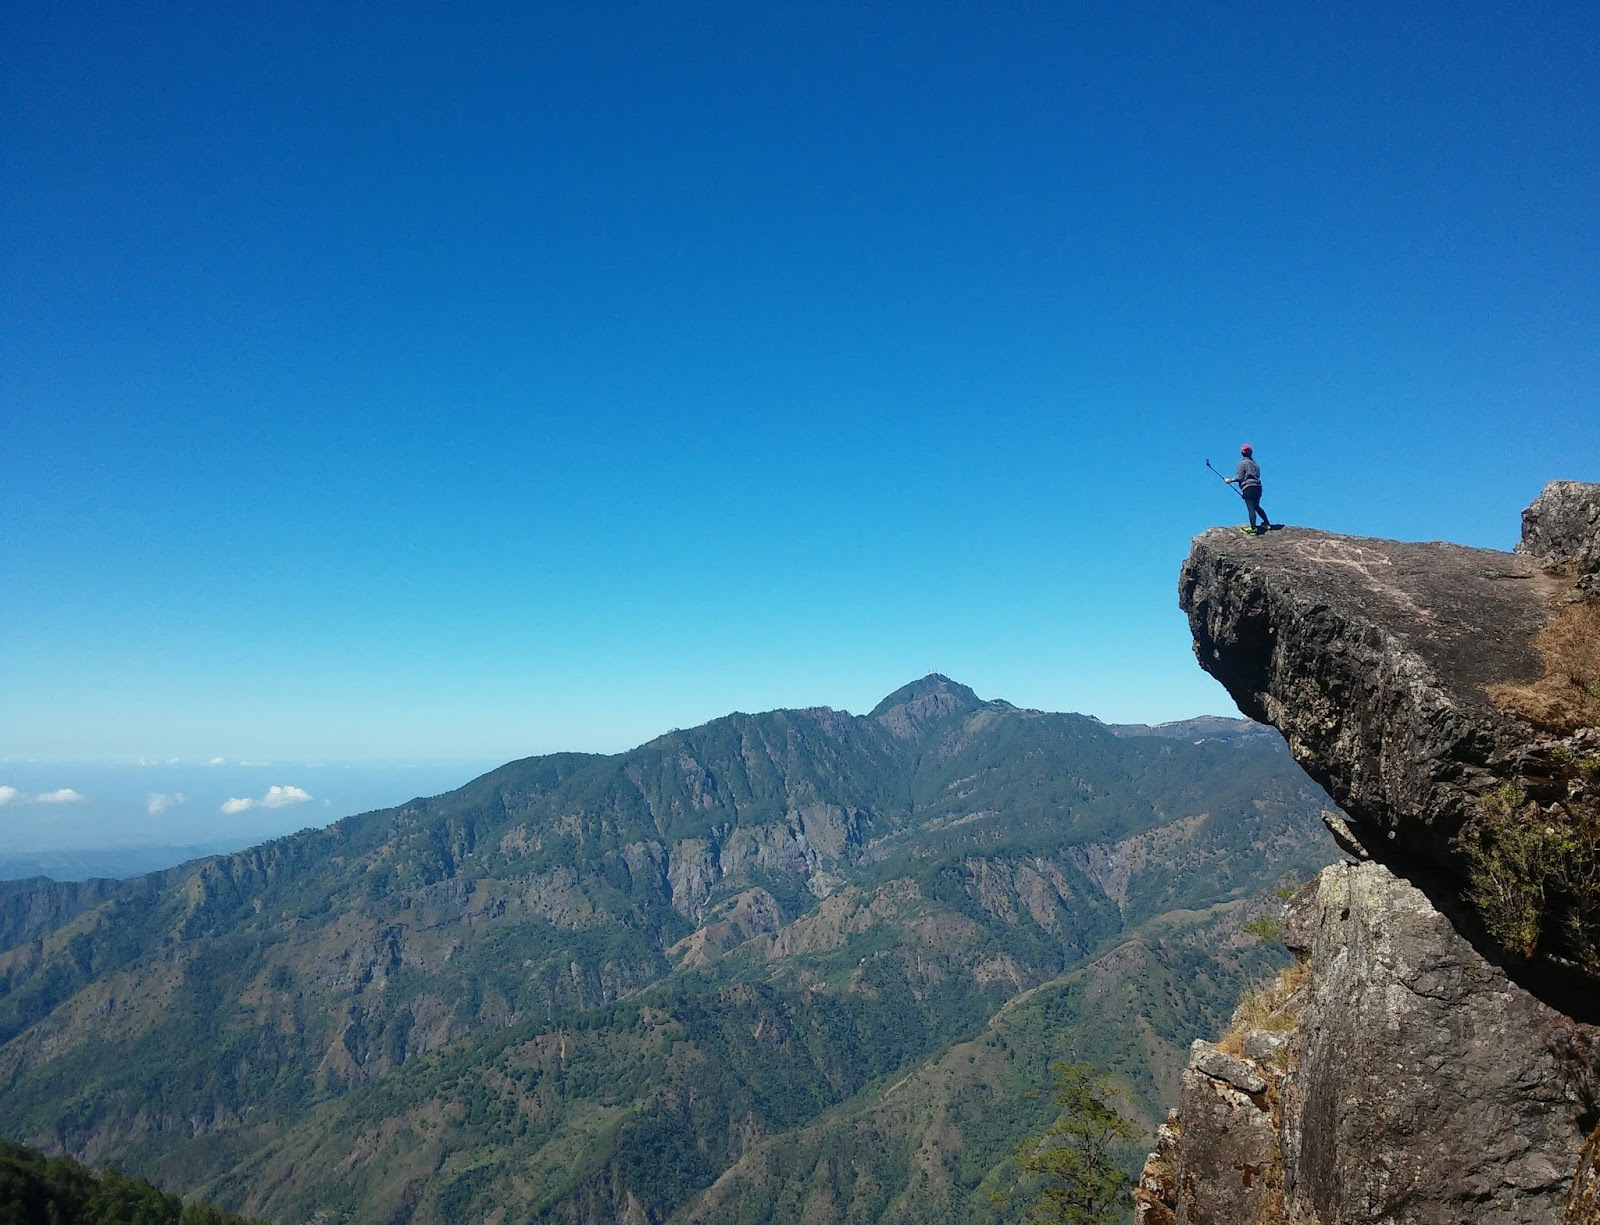 Gungal Rock, Mt. Ulap Itogon